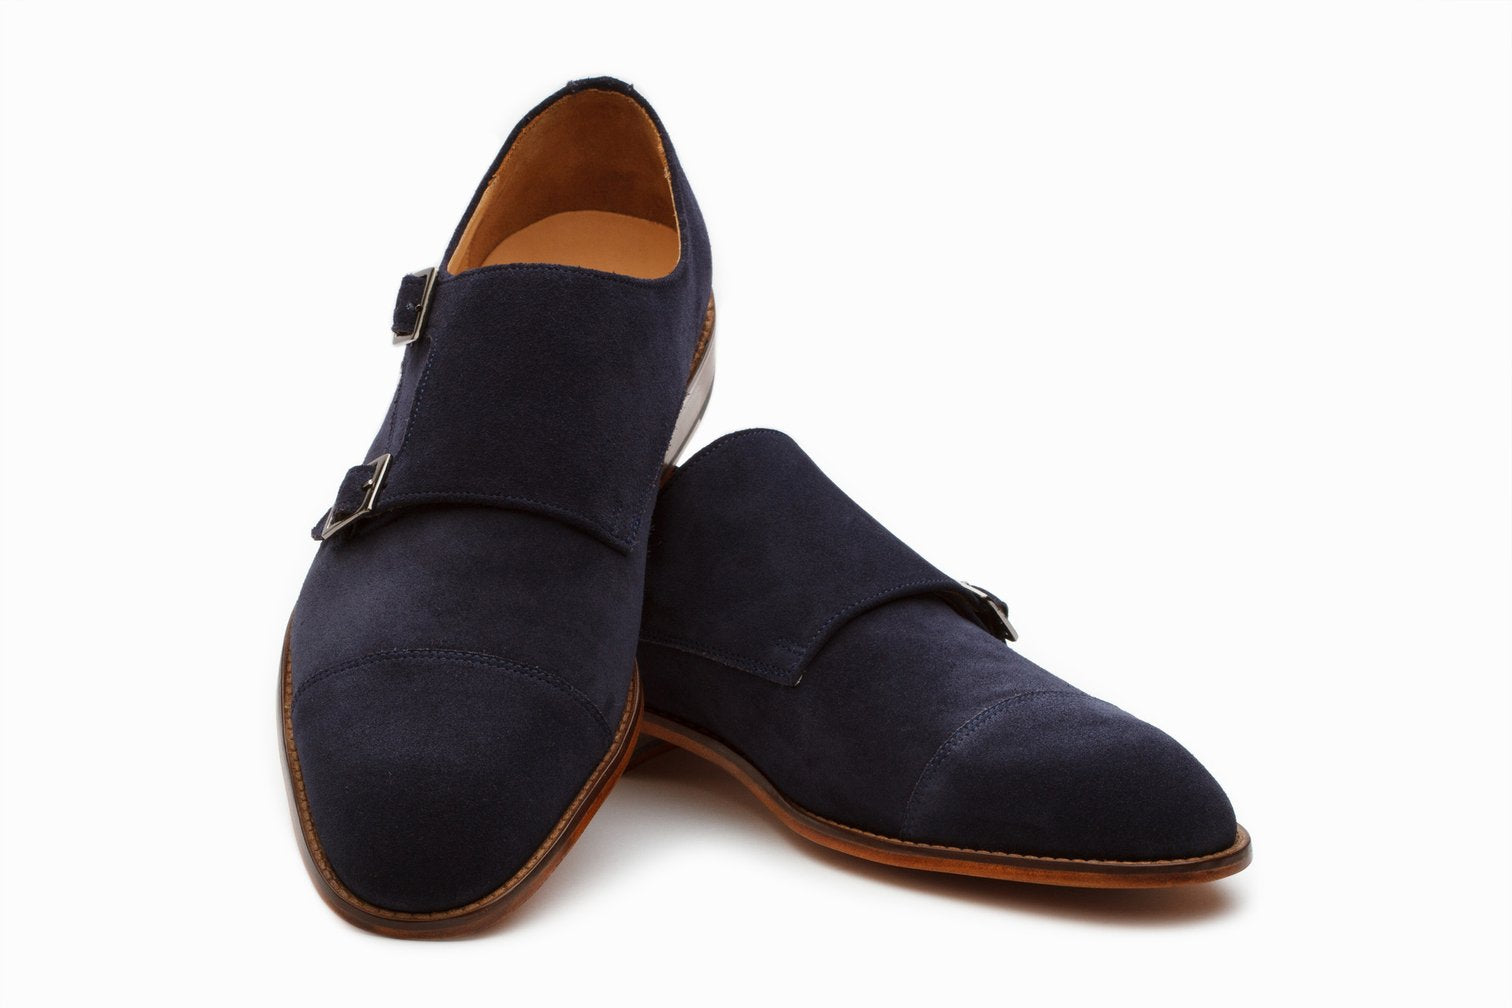 9577a43dd0fa Buy Double Monks - Navy Suede